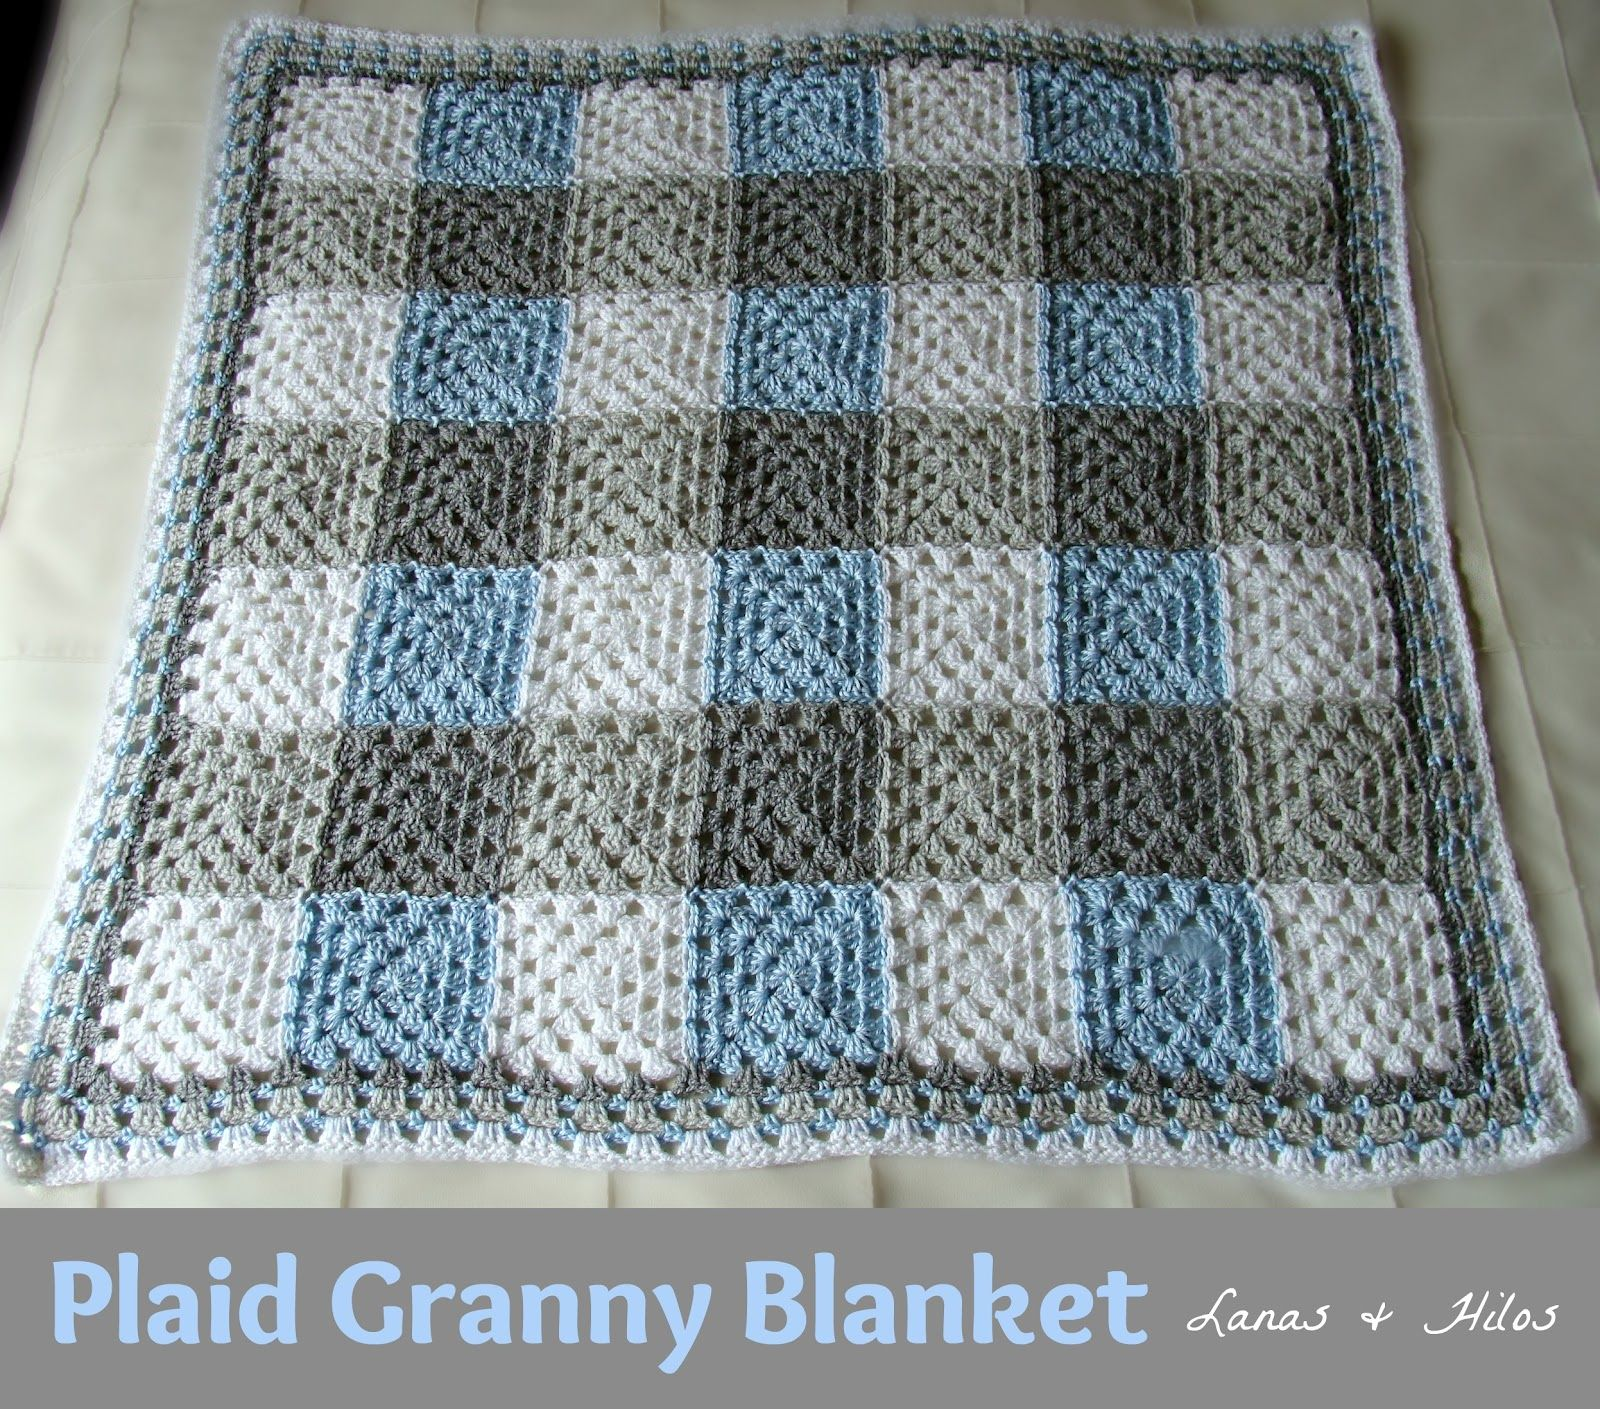 Free Crochet Pattern For Granny Square Baby Blanket : Granny Square Blanket on Pinterest Granny Square Afghan ...